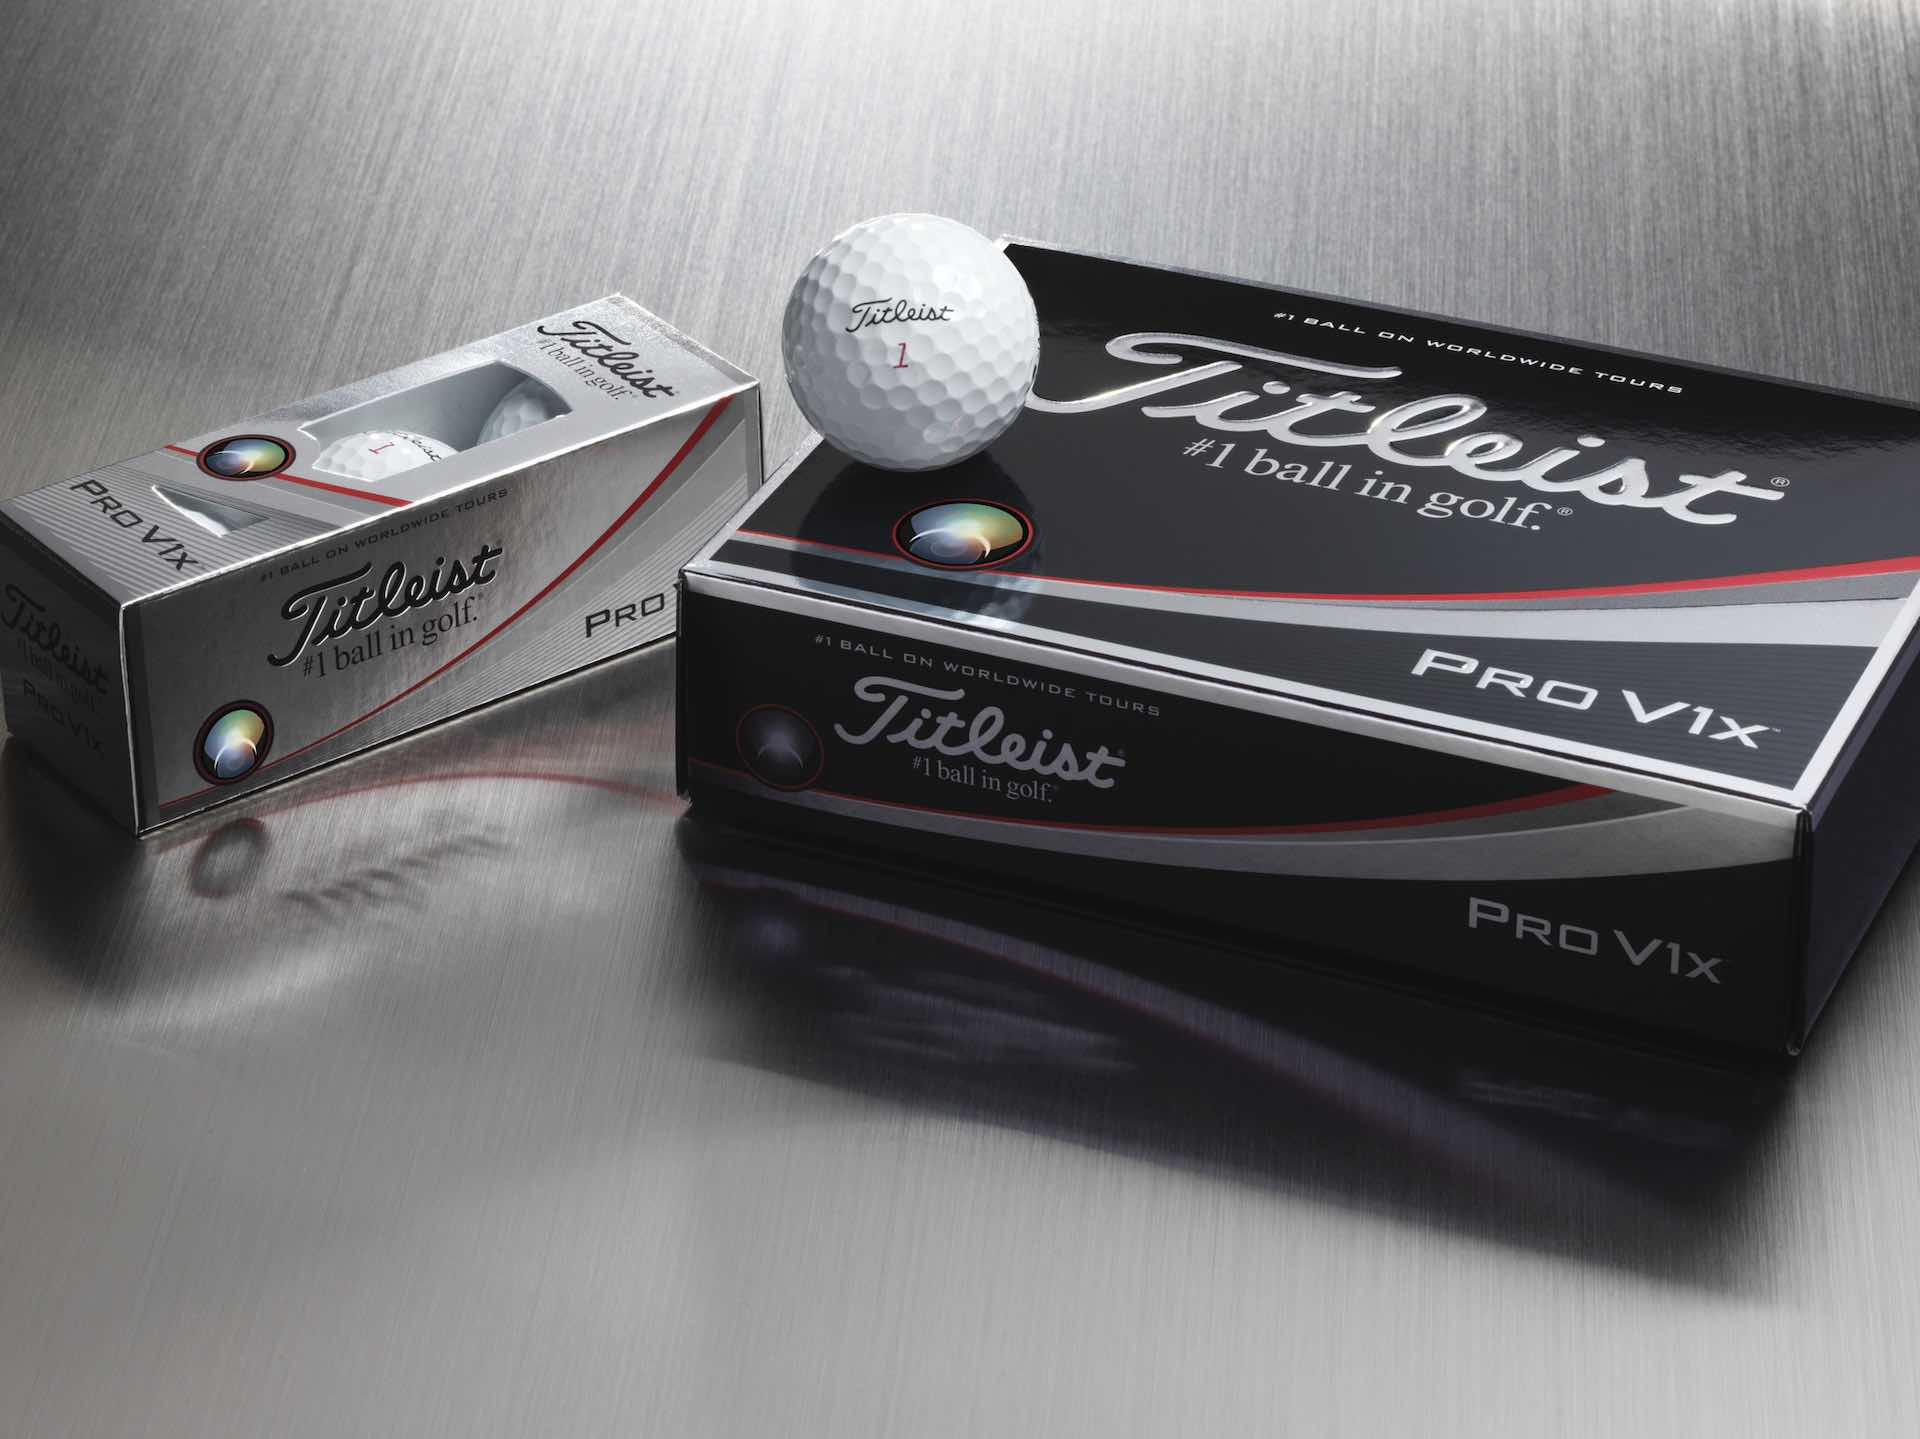 Titleist breaks more records for #1 ball in golf